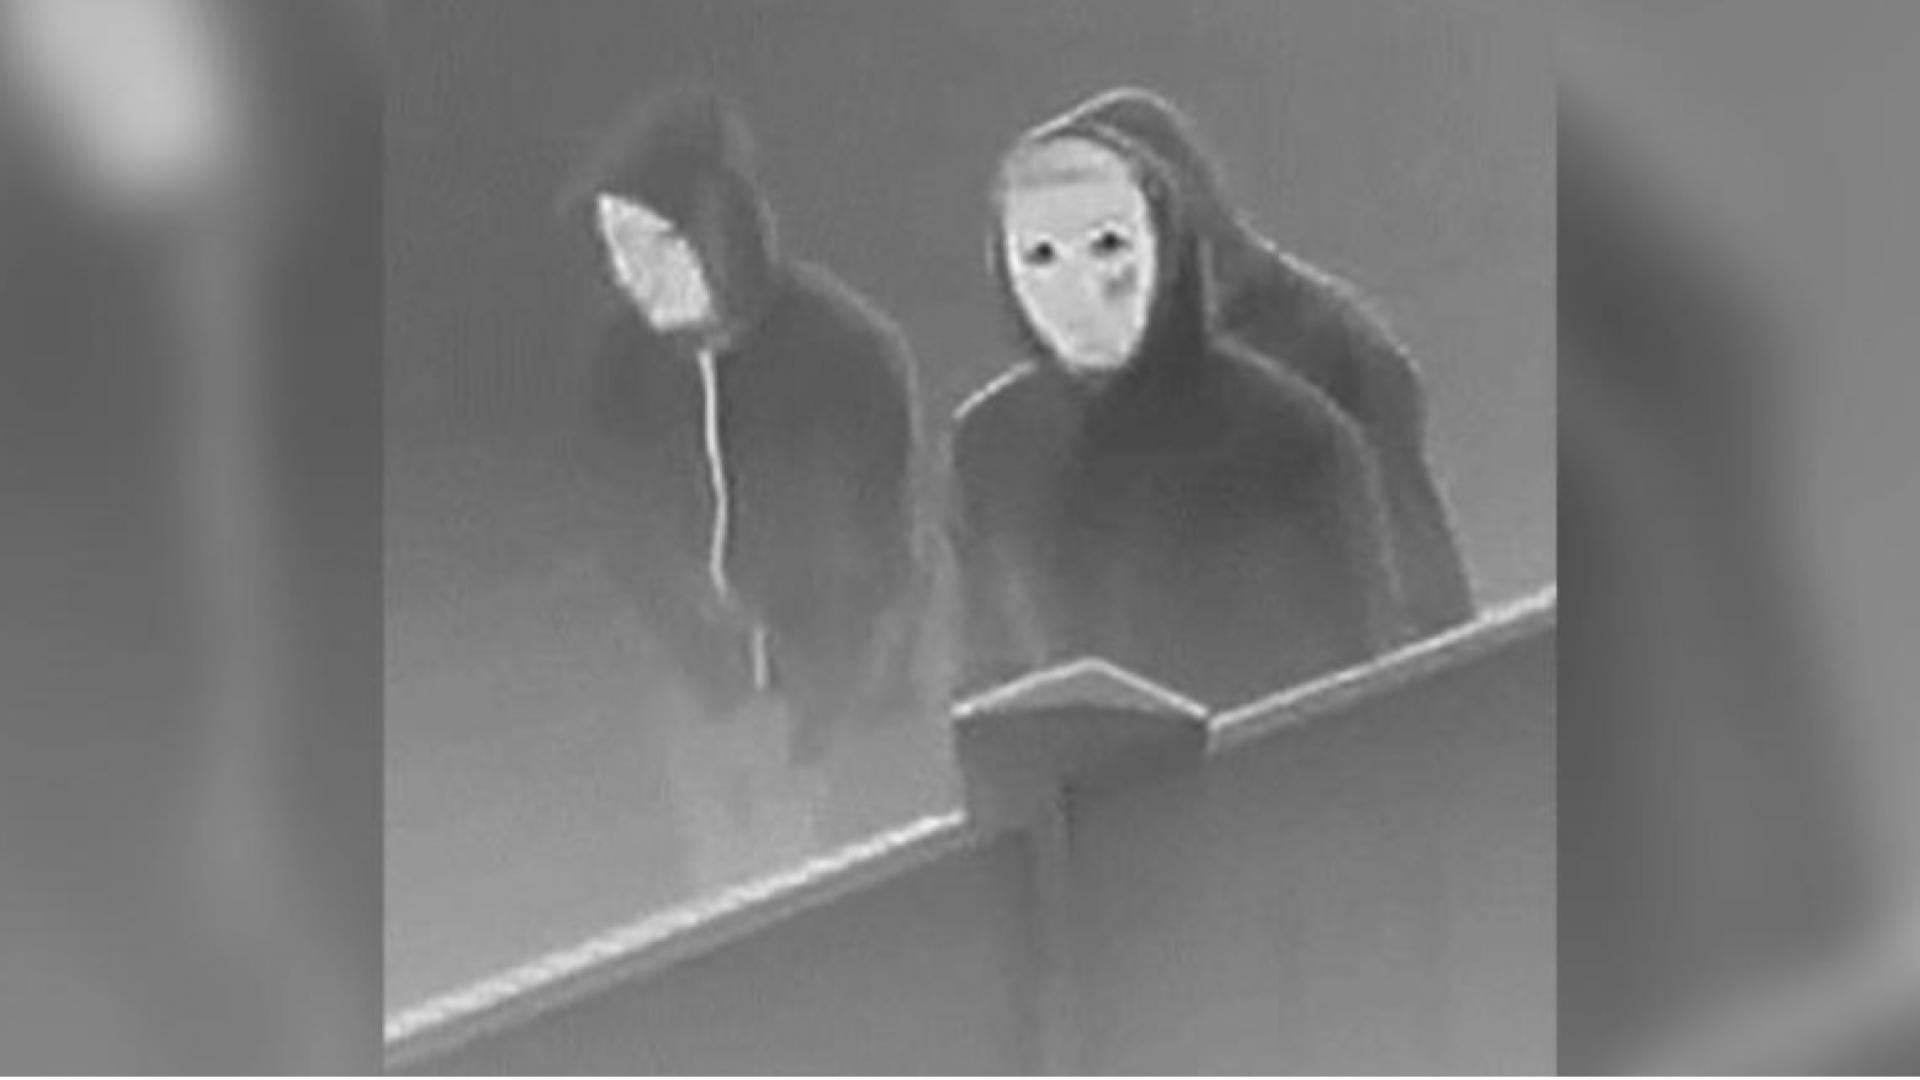 Denver police released a grainy surveillance photo of three arson suspects.